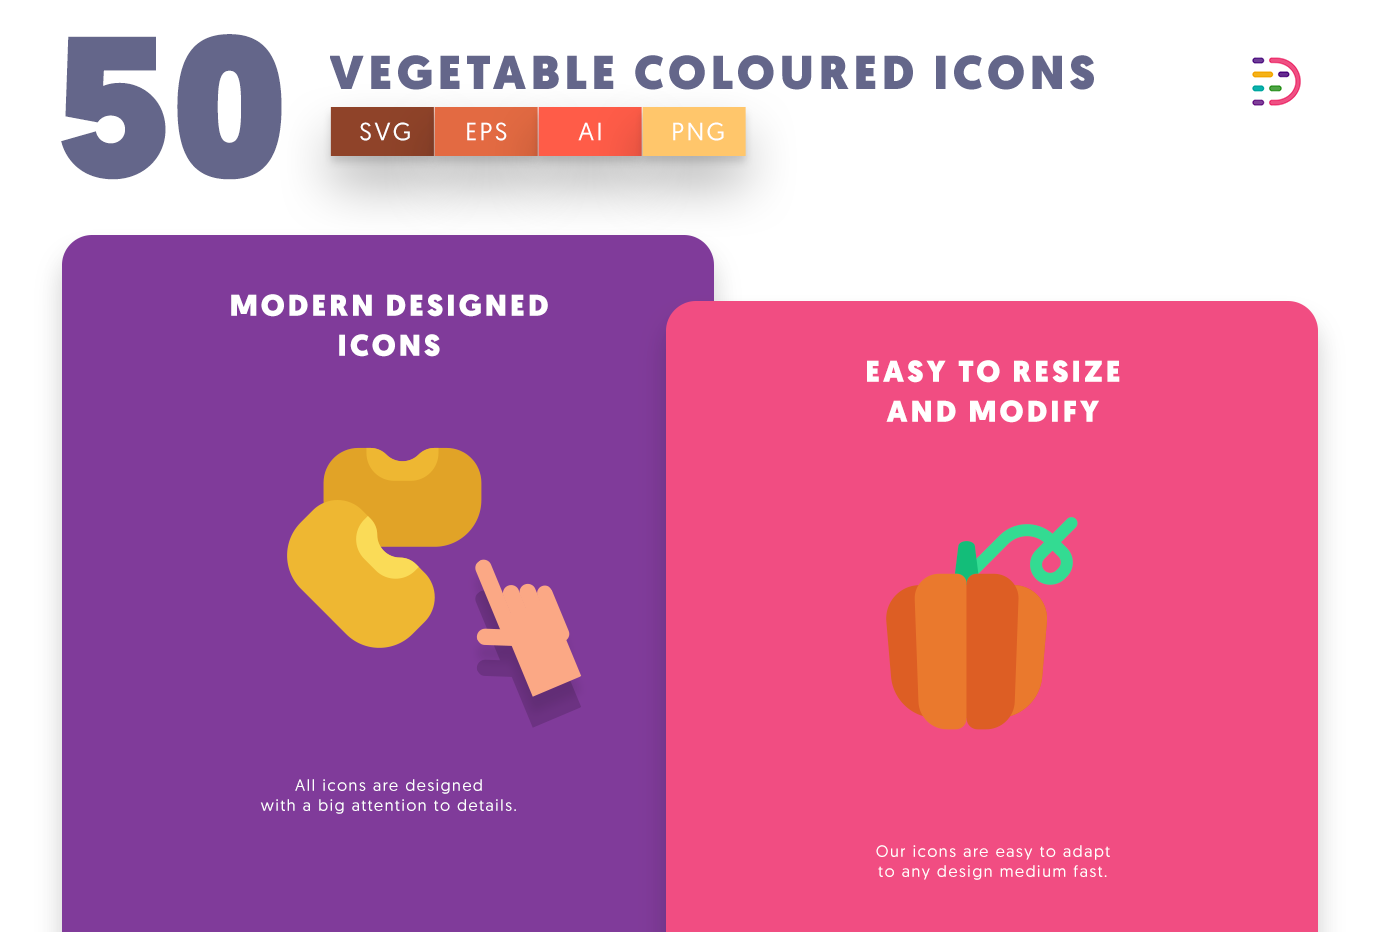 Vegetable Coloured icons png/svg/eps